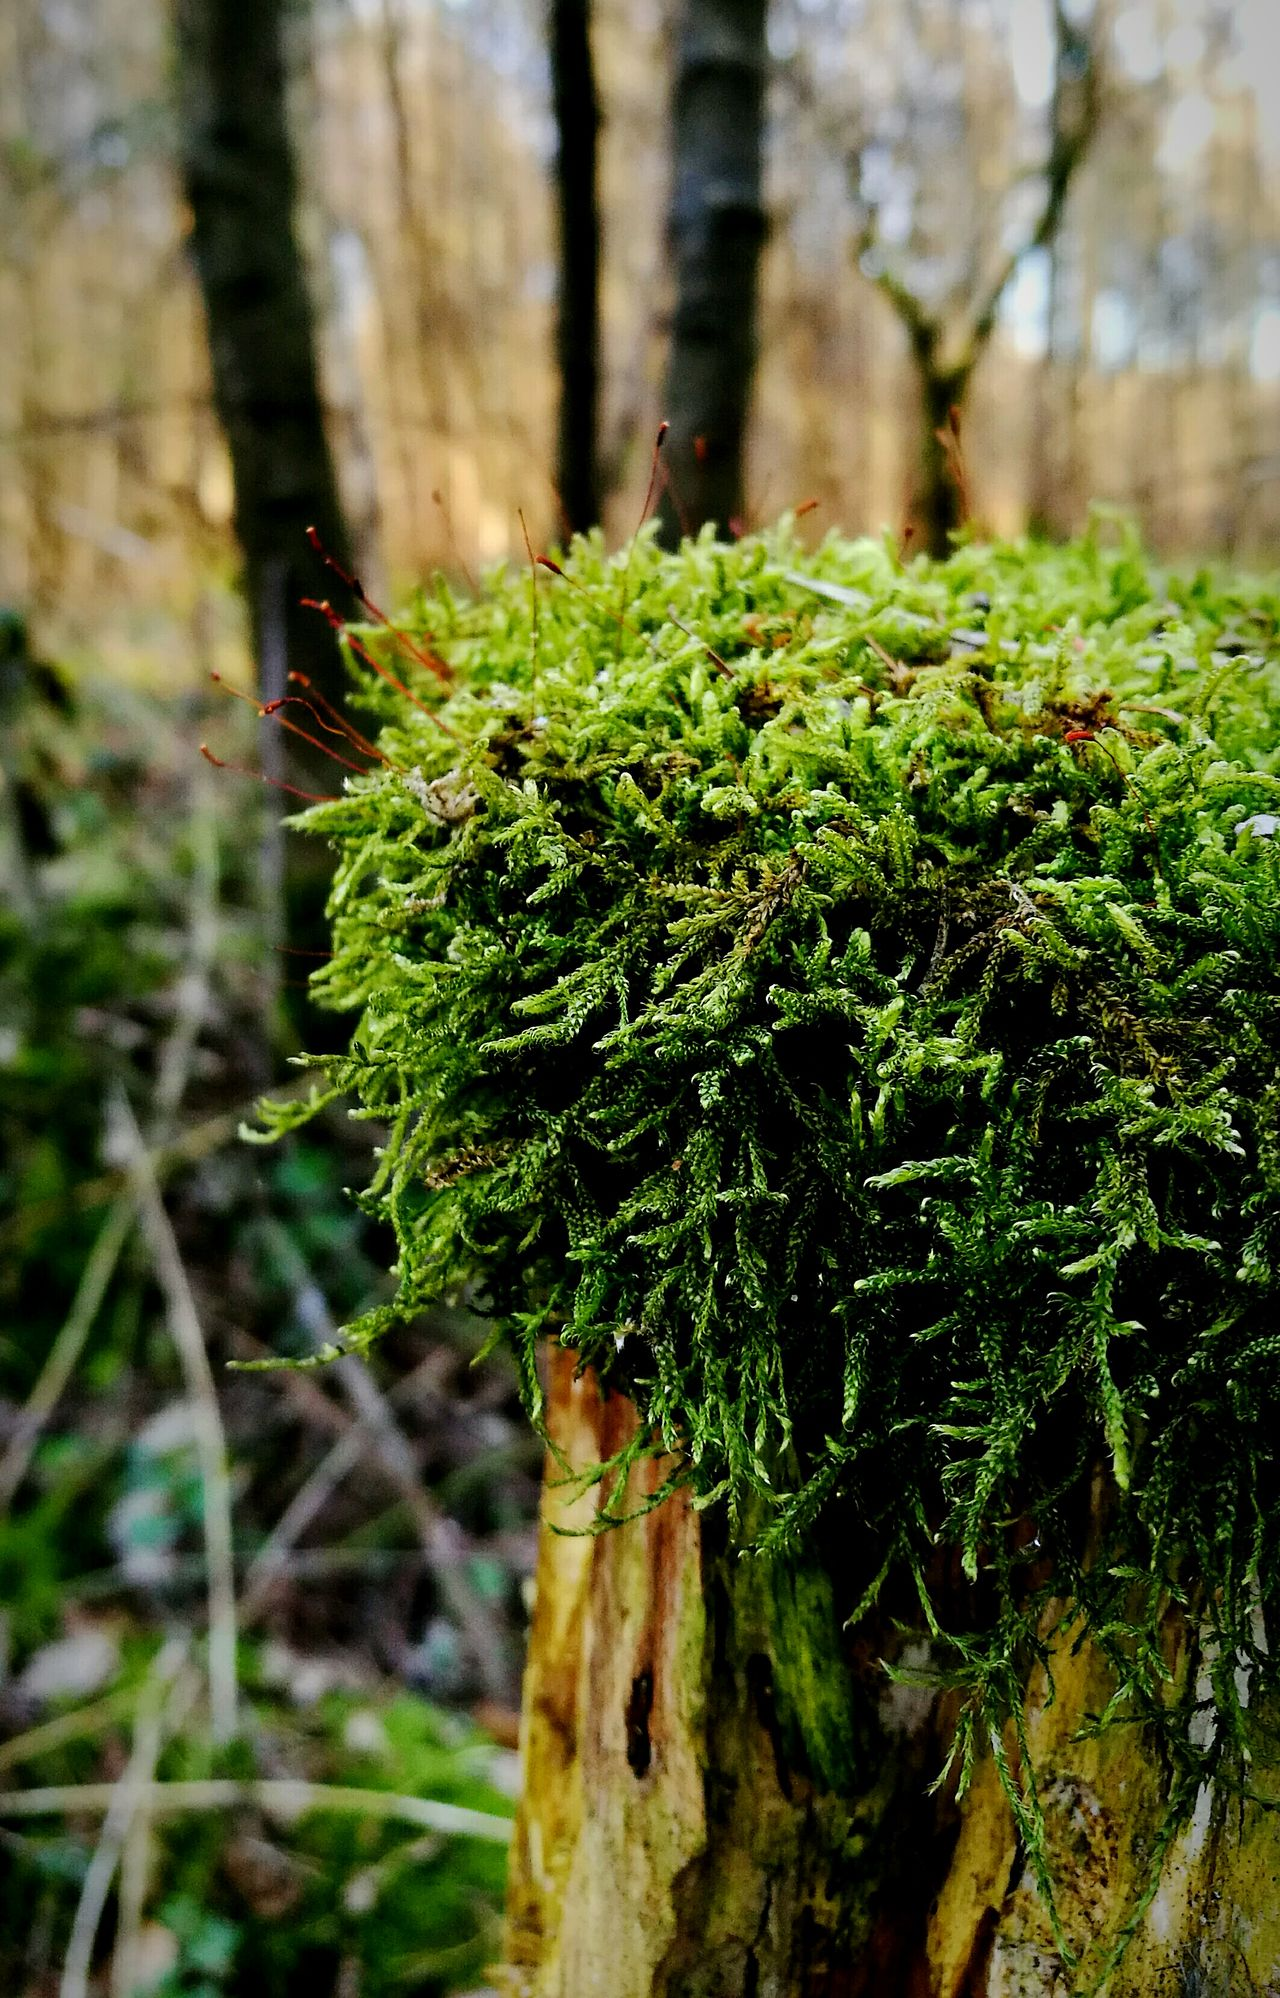 Green Color Nature Growth Focus On Foreground Tree Beauty In Nature Plant Close-up Outdoors Nature Photography Plant Fragility Moss Moss-covered Moss Covered Tree Huawei P9 Leica HuaweiP9Photography Huaweiphotography HuaweiP9